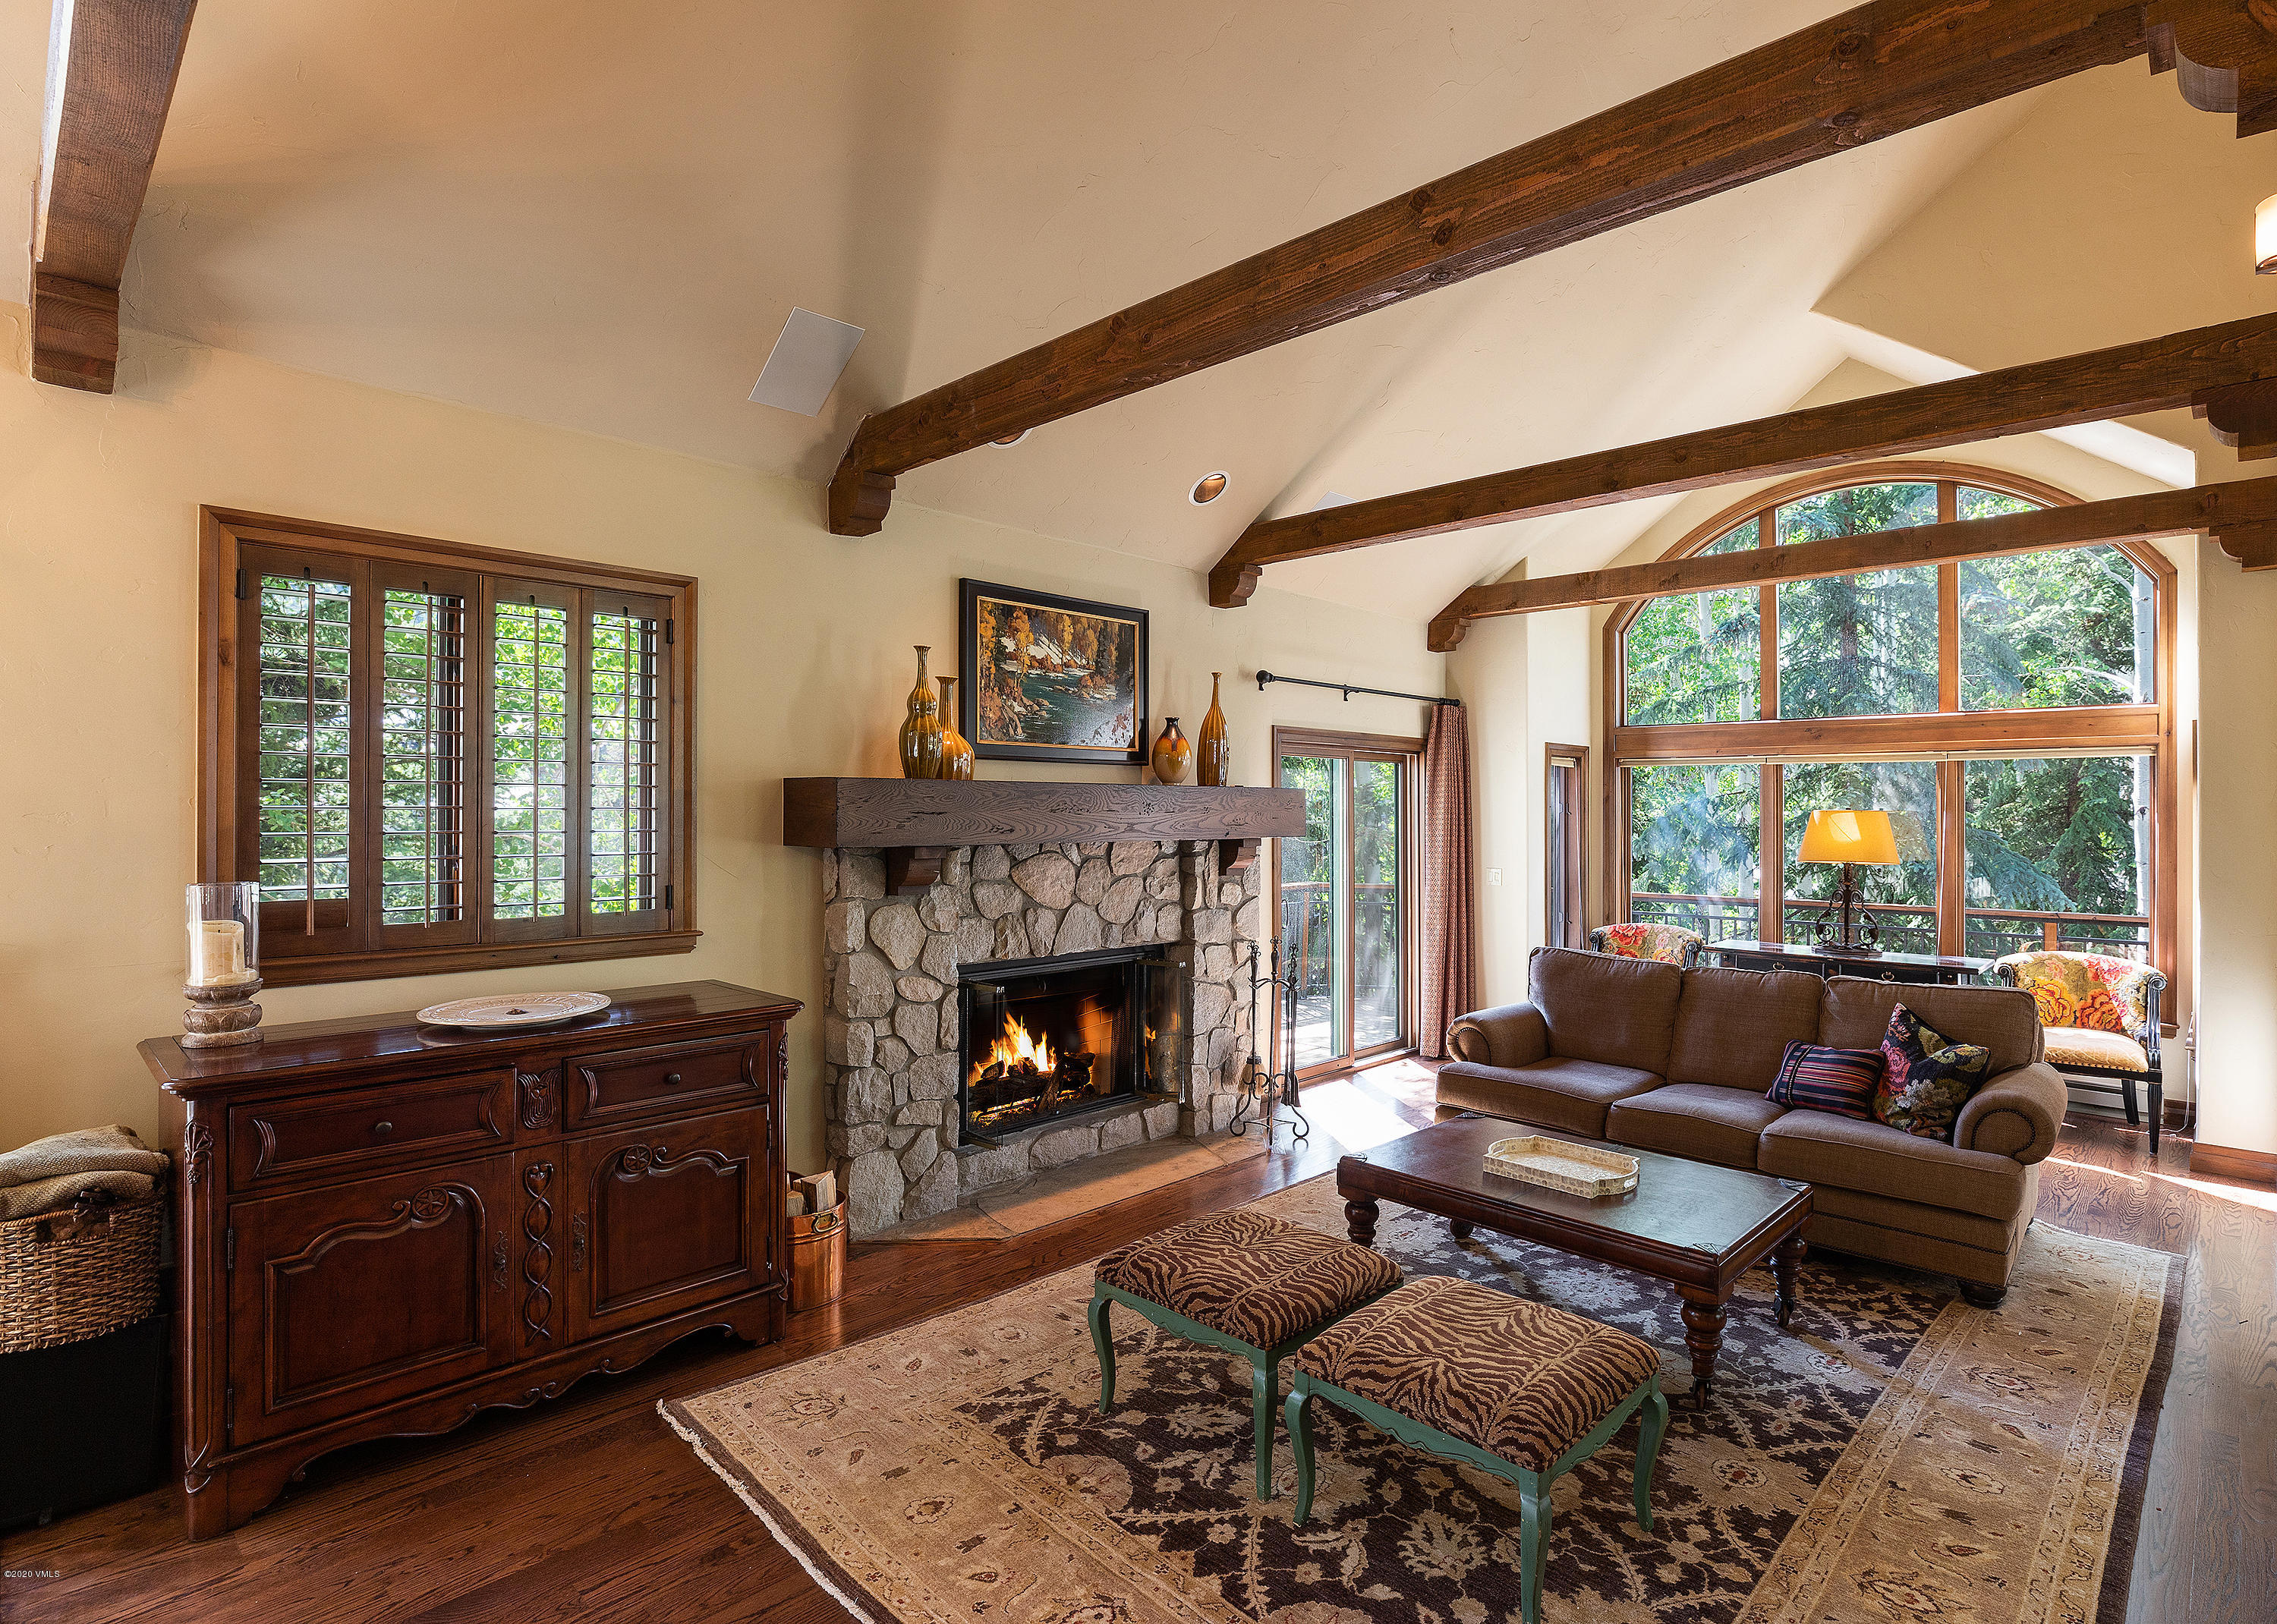 Back on the market with Price Adjustment! Rare opportunity to own a Larkspur Villa located half a block from Beaver Creek village. This single family residence provides a spacious floor plan with a bright and open main floor living area, vaulted ceilings, gourmet kitchen, two car garage and an additional lower level family room. With enough room to accommodate 13+ guests, this is the ultimate combination of spacious living with the convenience of a village location. Walking distance to shopping, dining and chairlifts. Owners and renters have ski-in/ski-out access at The Pines currently when using them for rental mgmt.